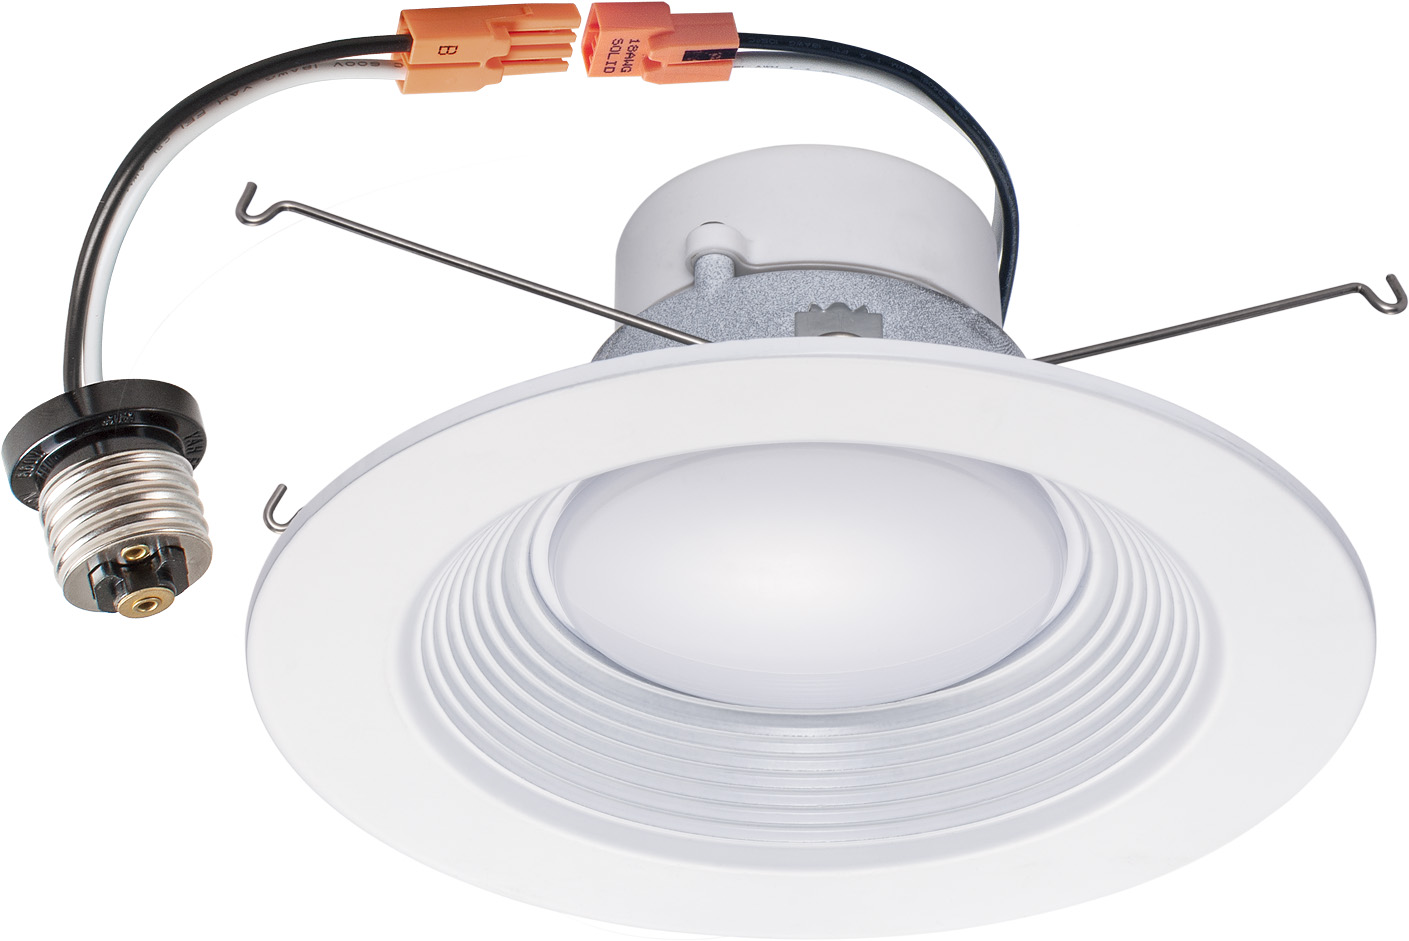 Dimmer For Recessed Lighting : Downlight trim pack inch w led recessed dimmable